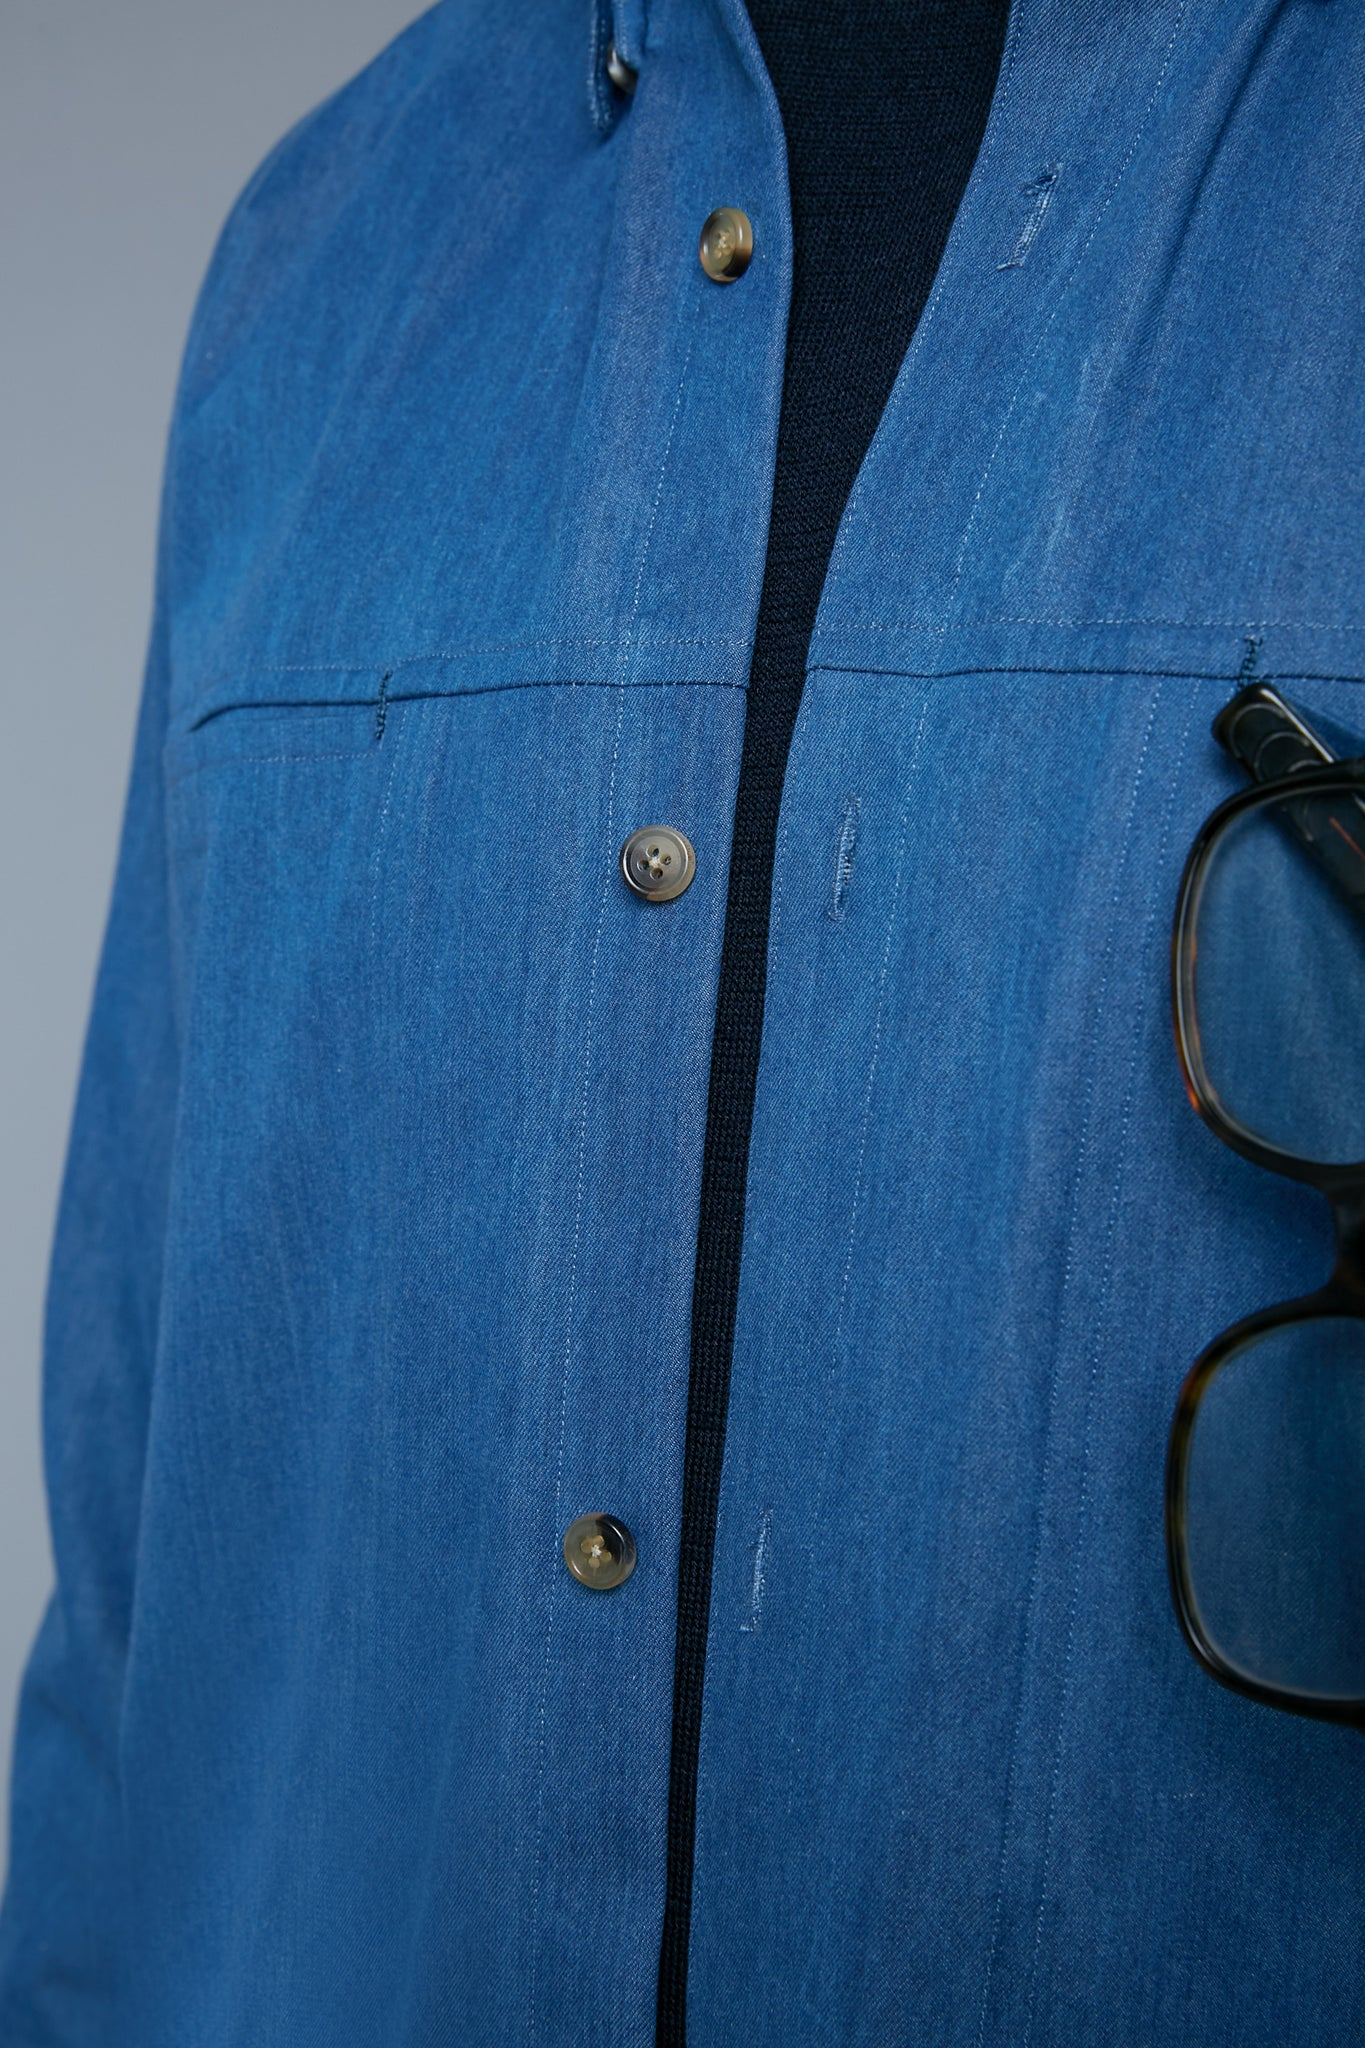 Detail View: Model Milos Drago wearing Kojima Denim Shirt